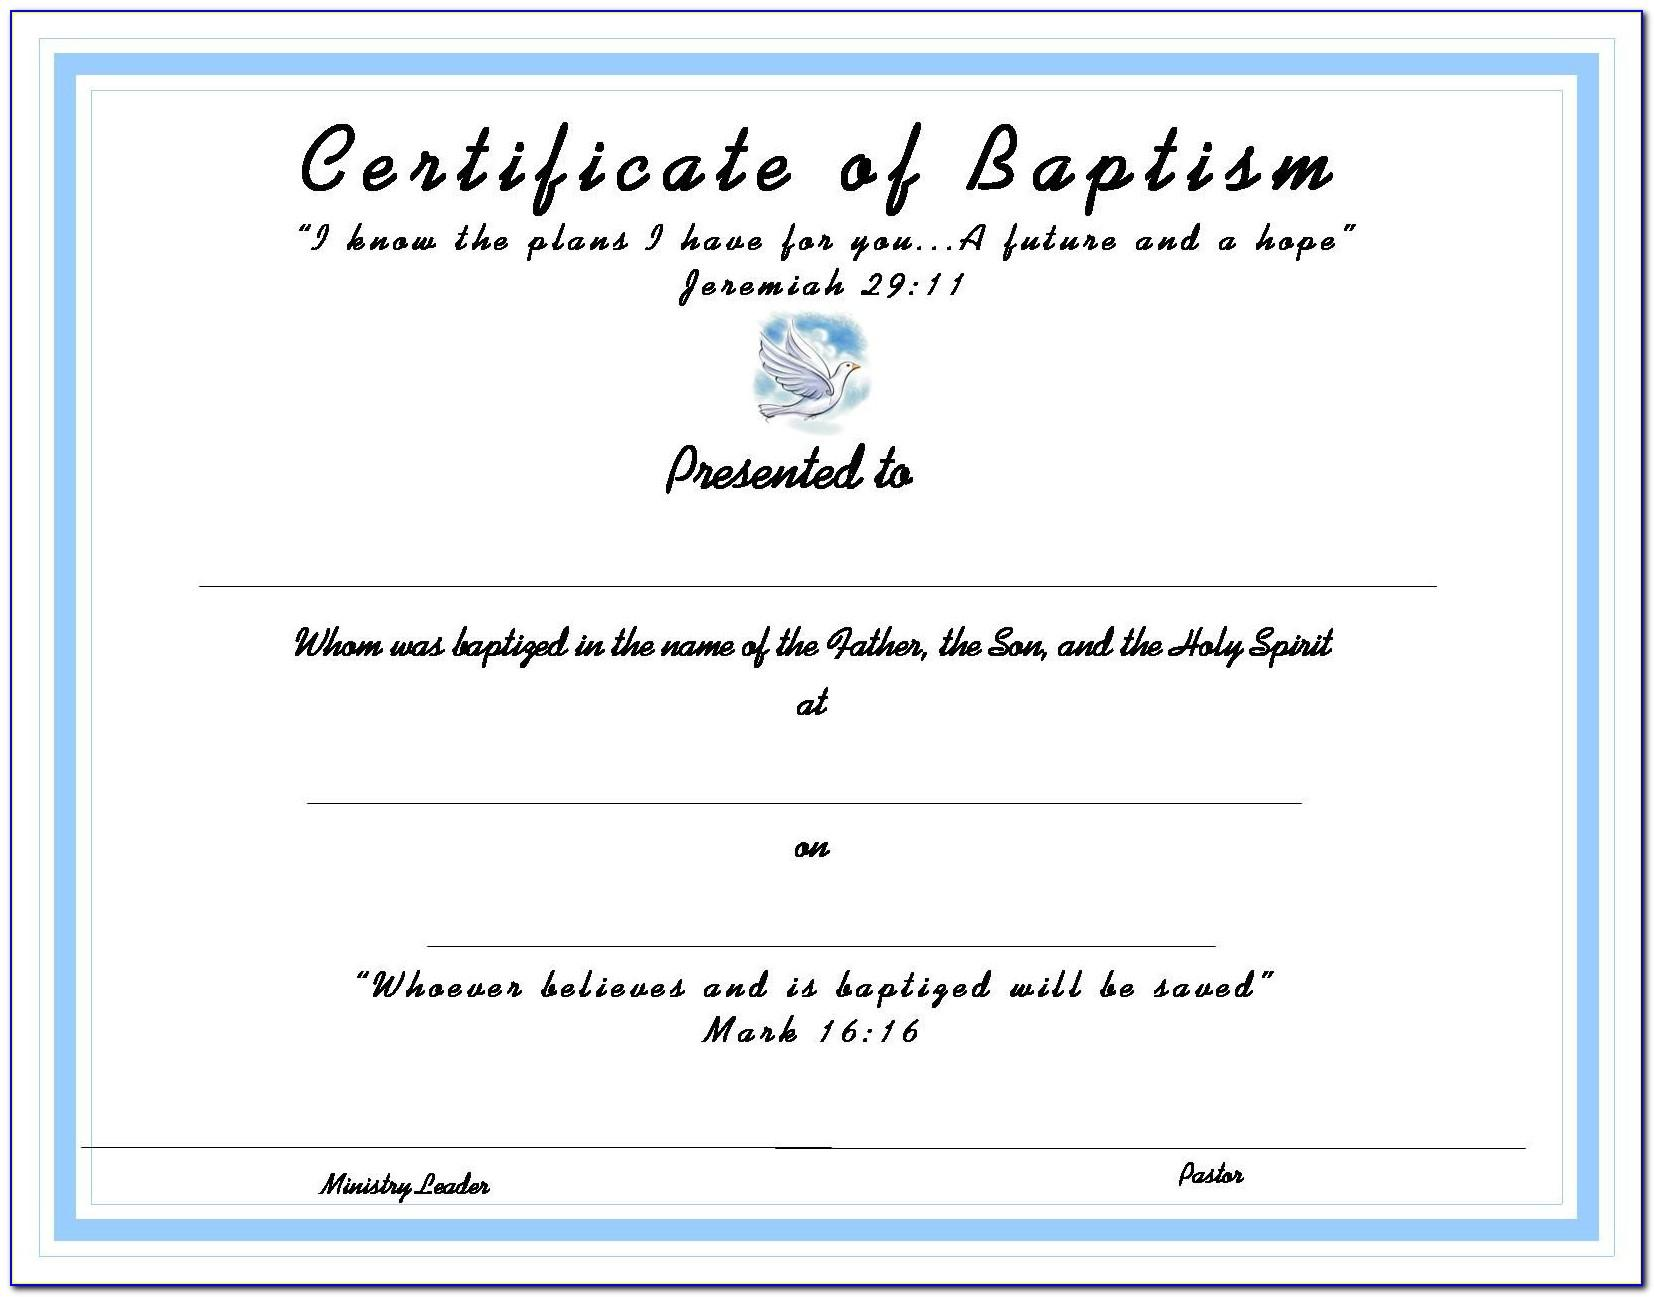 Bible Study Certificate Templates